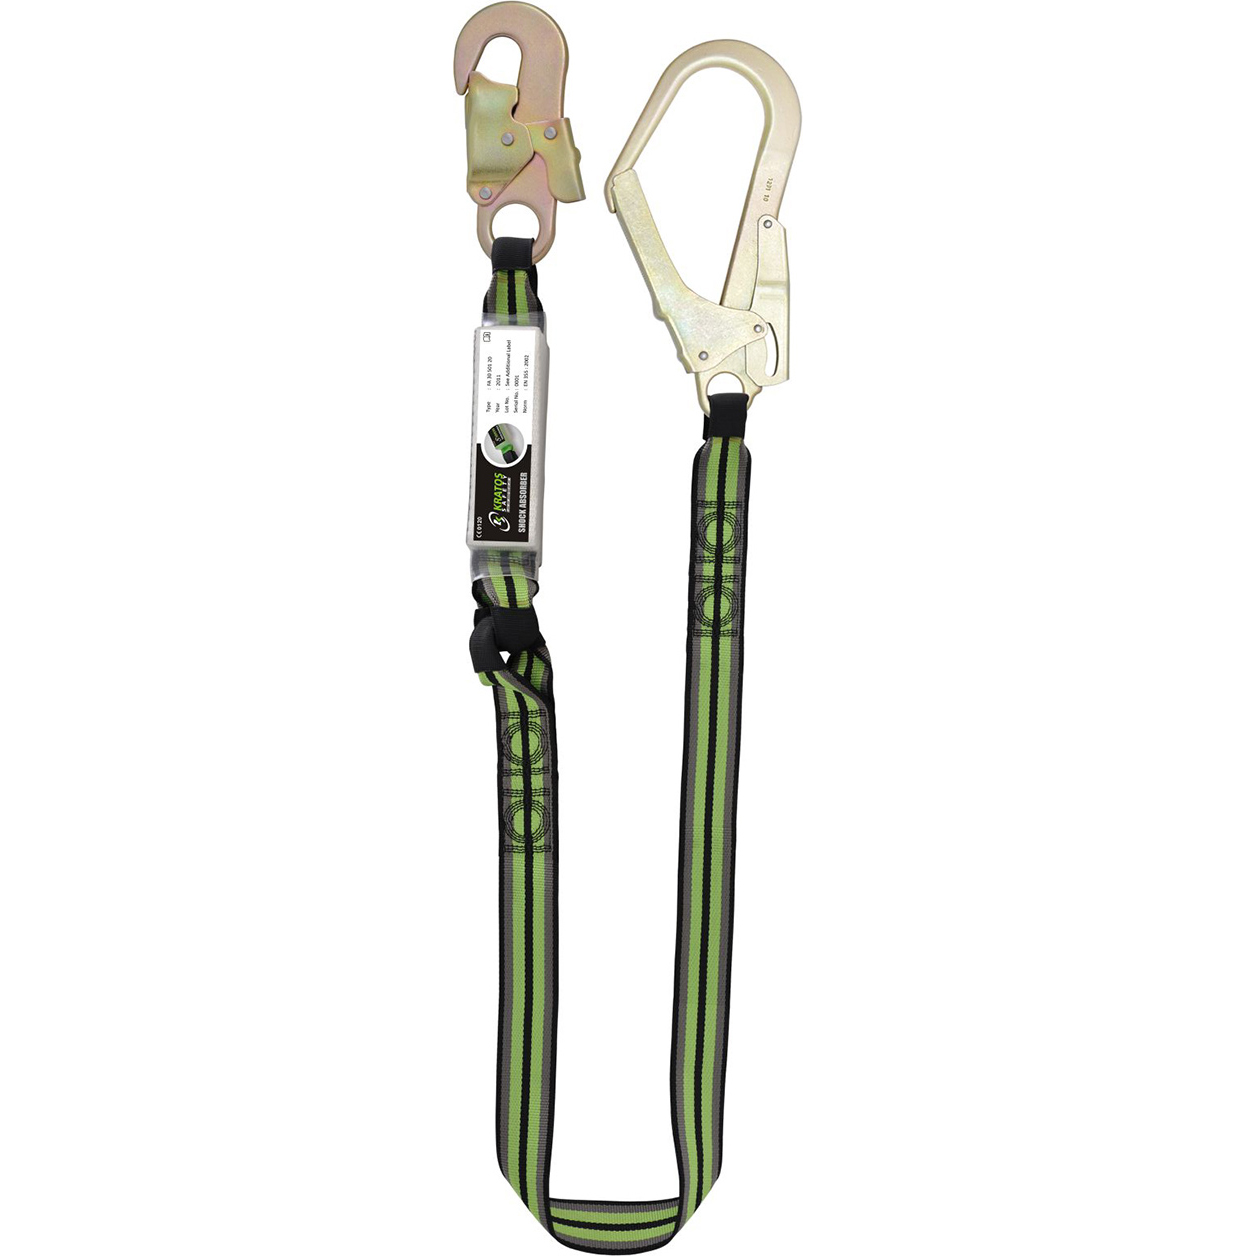 Kratos 1.5Mtr Lanyard plus Scaff Hook*Up to 3 Day Leadtime*